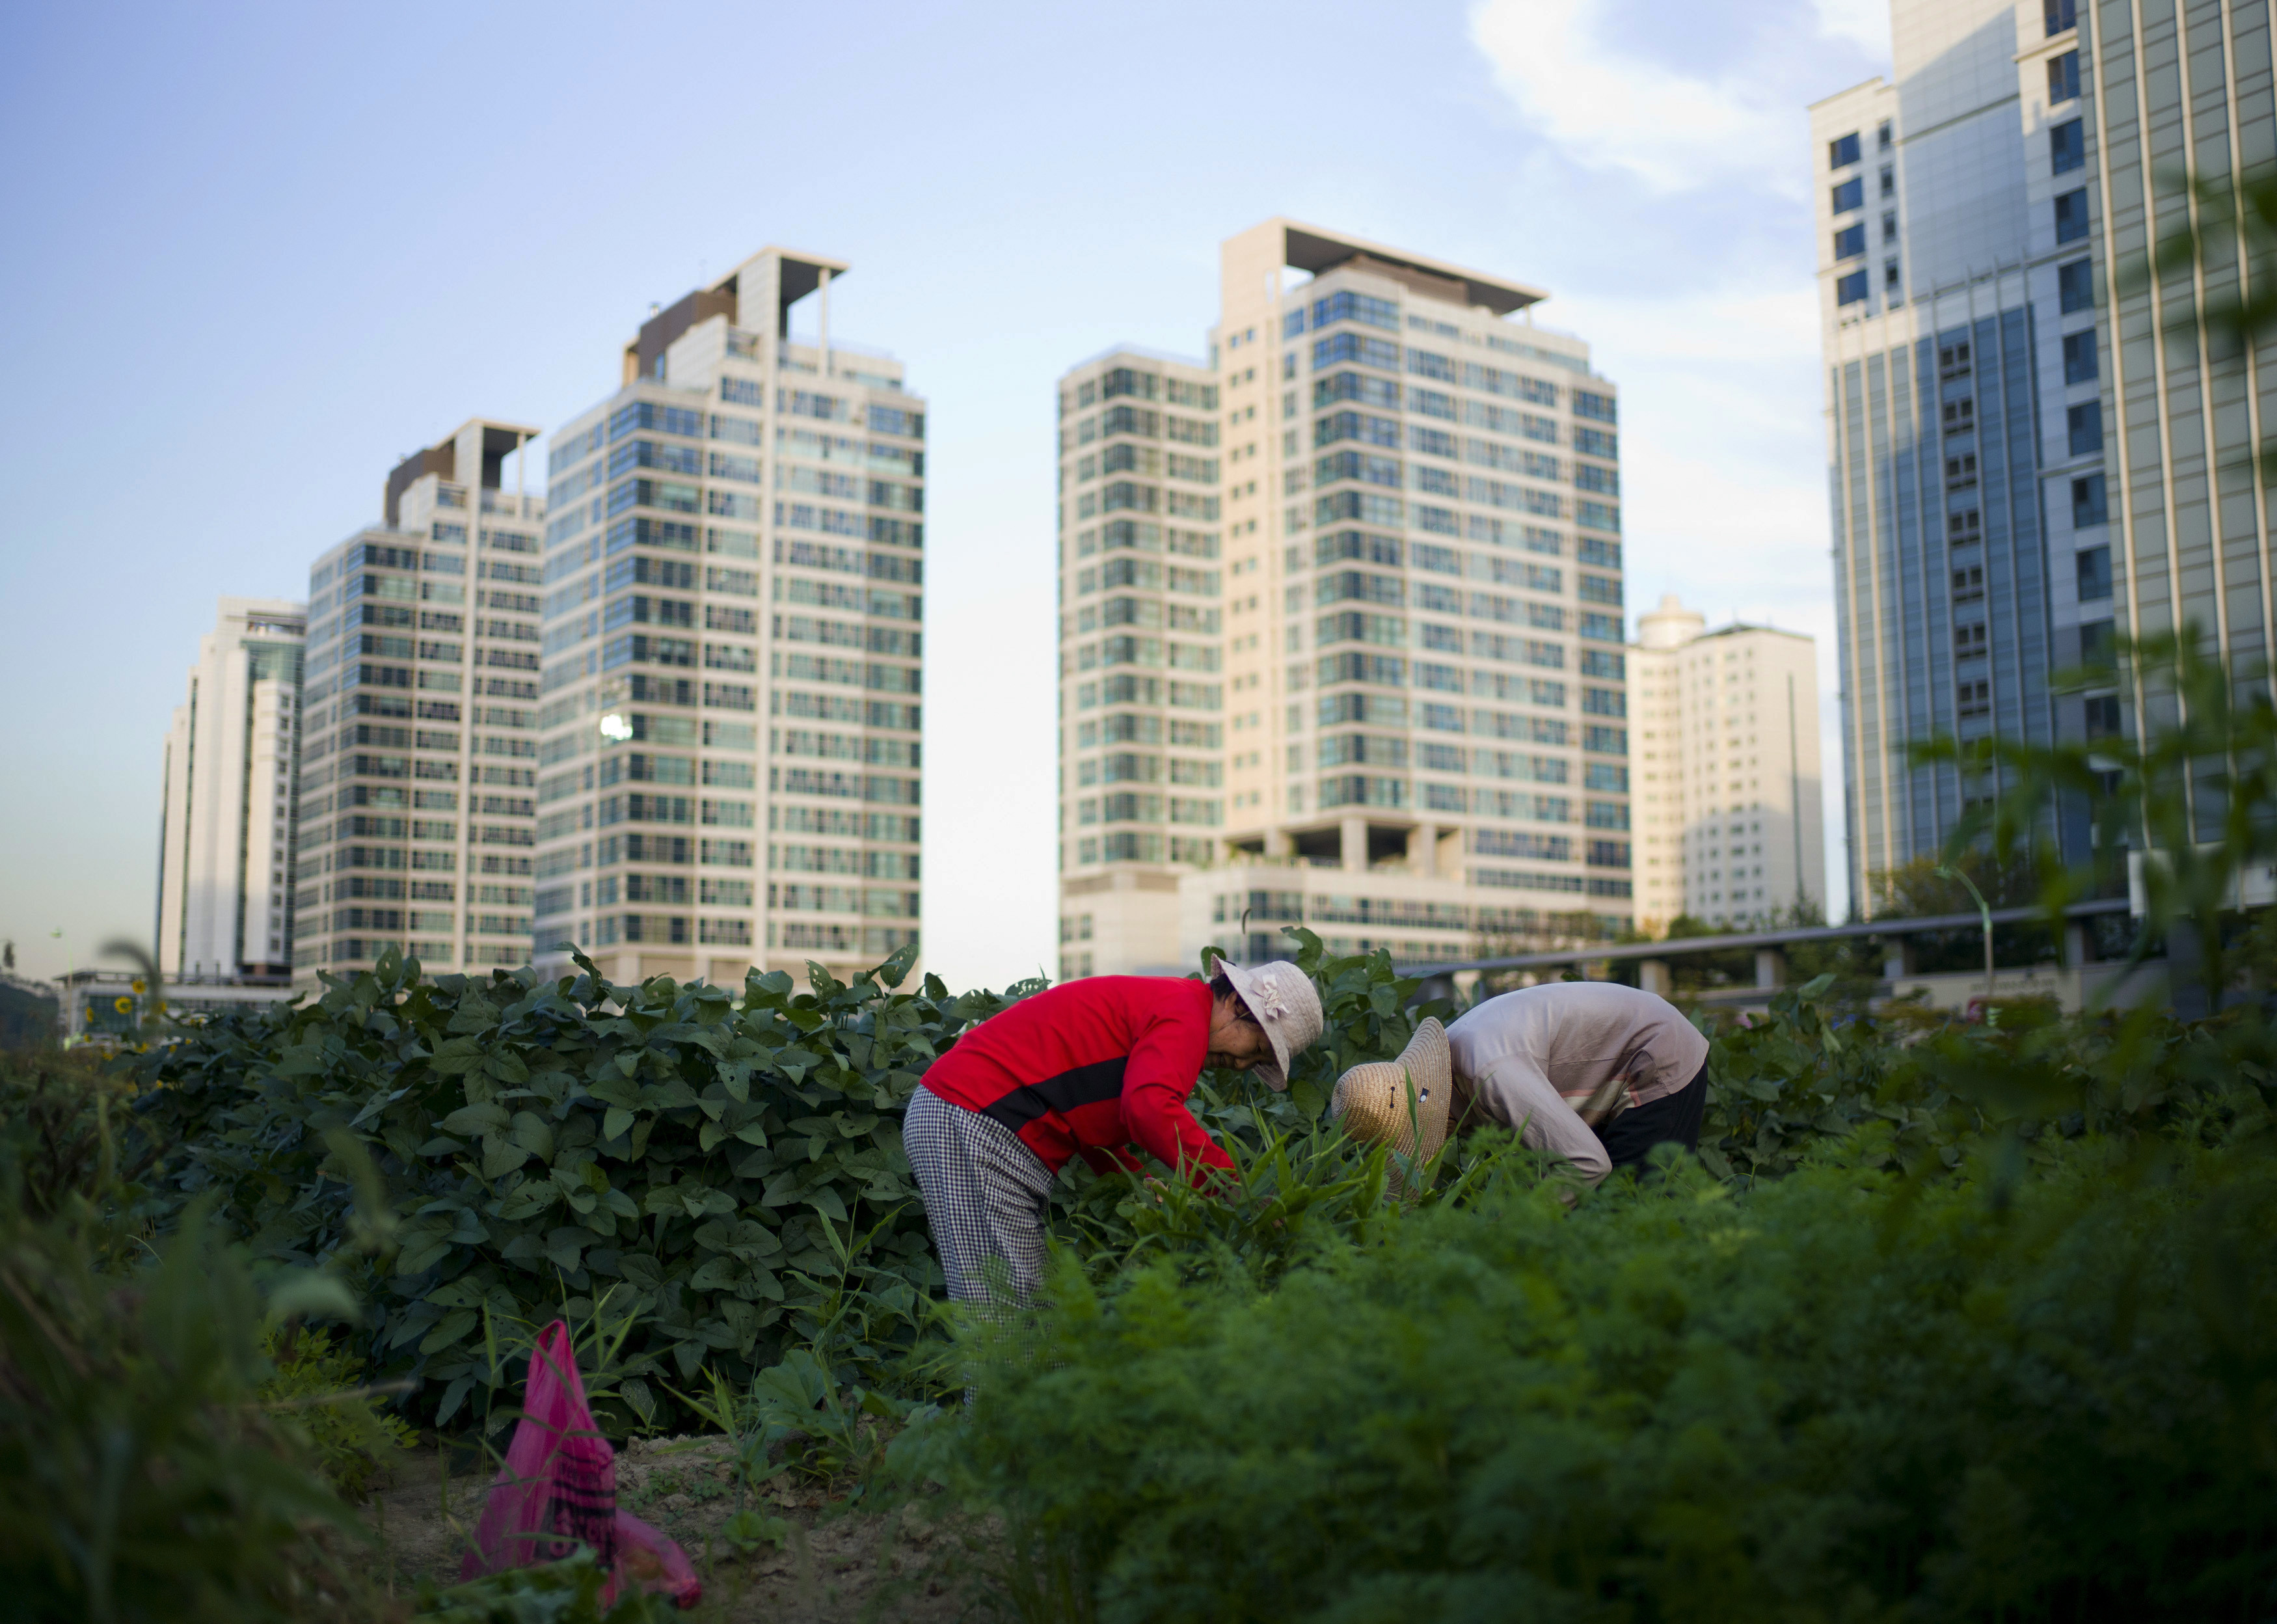 Women harvest crops from a communal green area among high-rise apartments in Incheon September 18, 2014.   REUTERS/Jason Reed  (SOUTH KOREA - Tags: AGRICULTURE SOCIETY) - GM1EA9I1HMH01